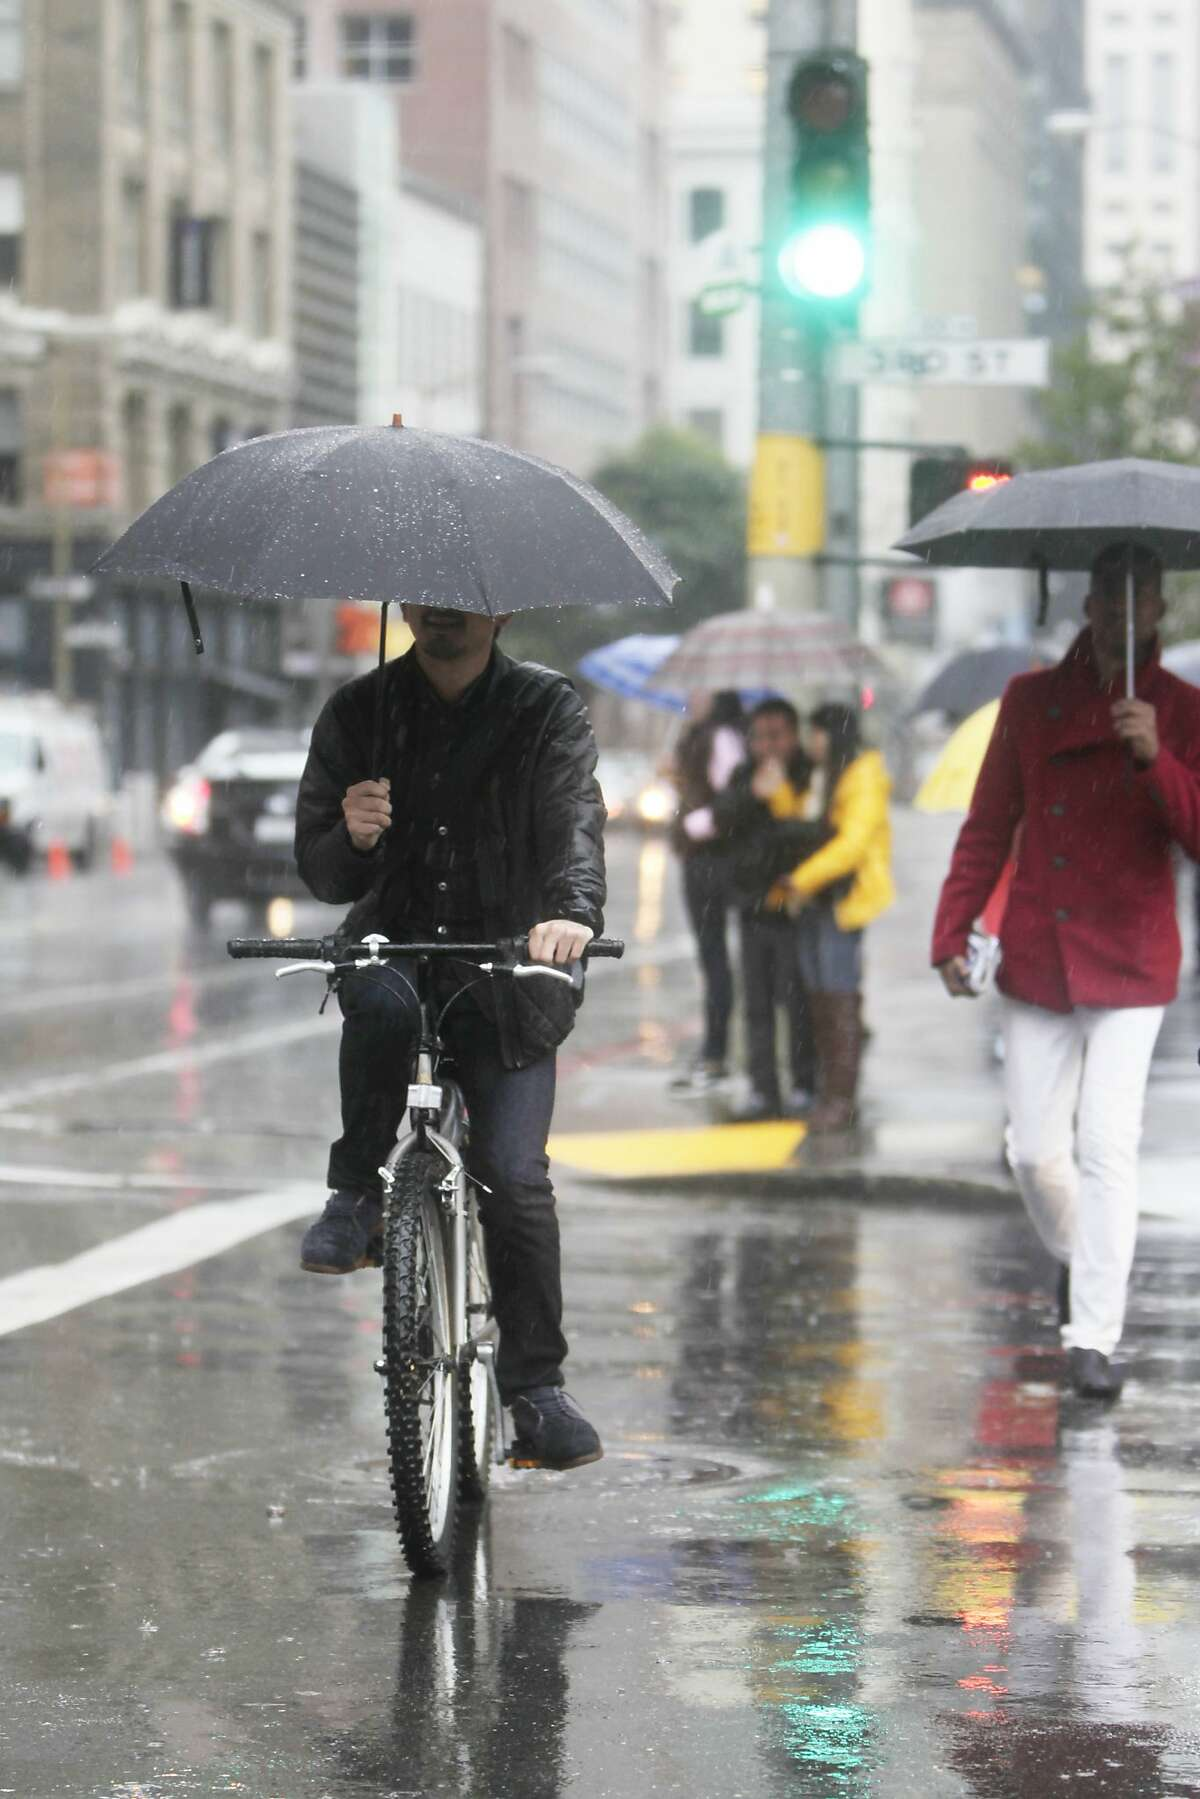 A bicyclist crosses Third Street in the rain under an umbrella on Tuesday, January 5, 2015 in San Francisco, Calif.